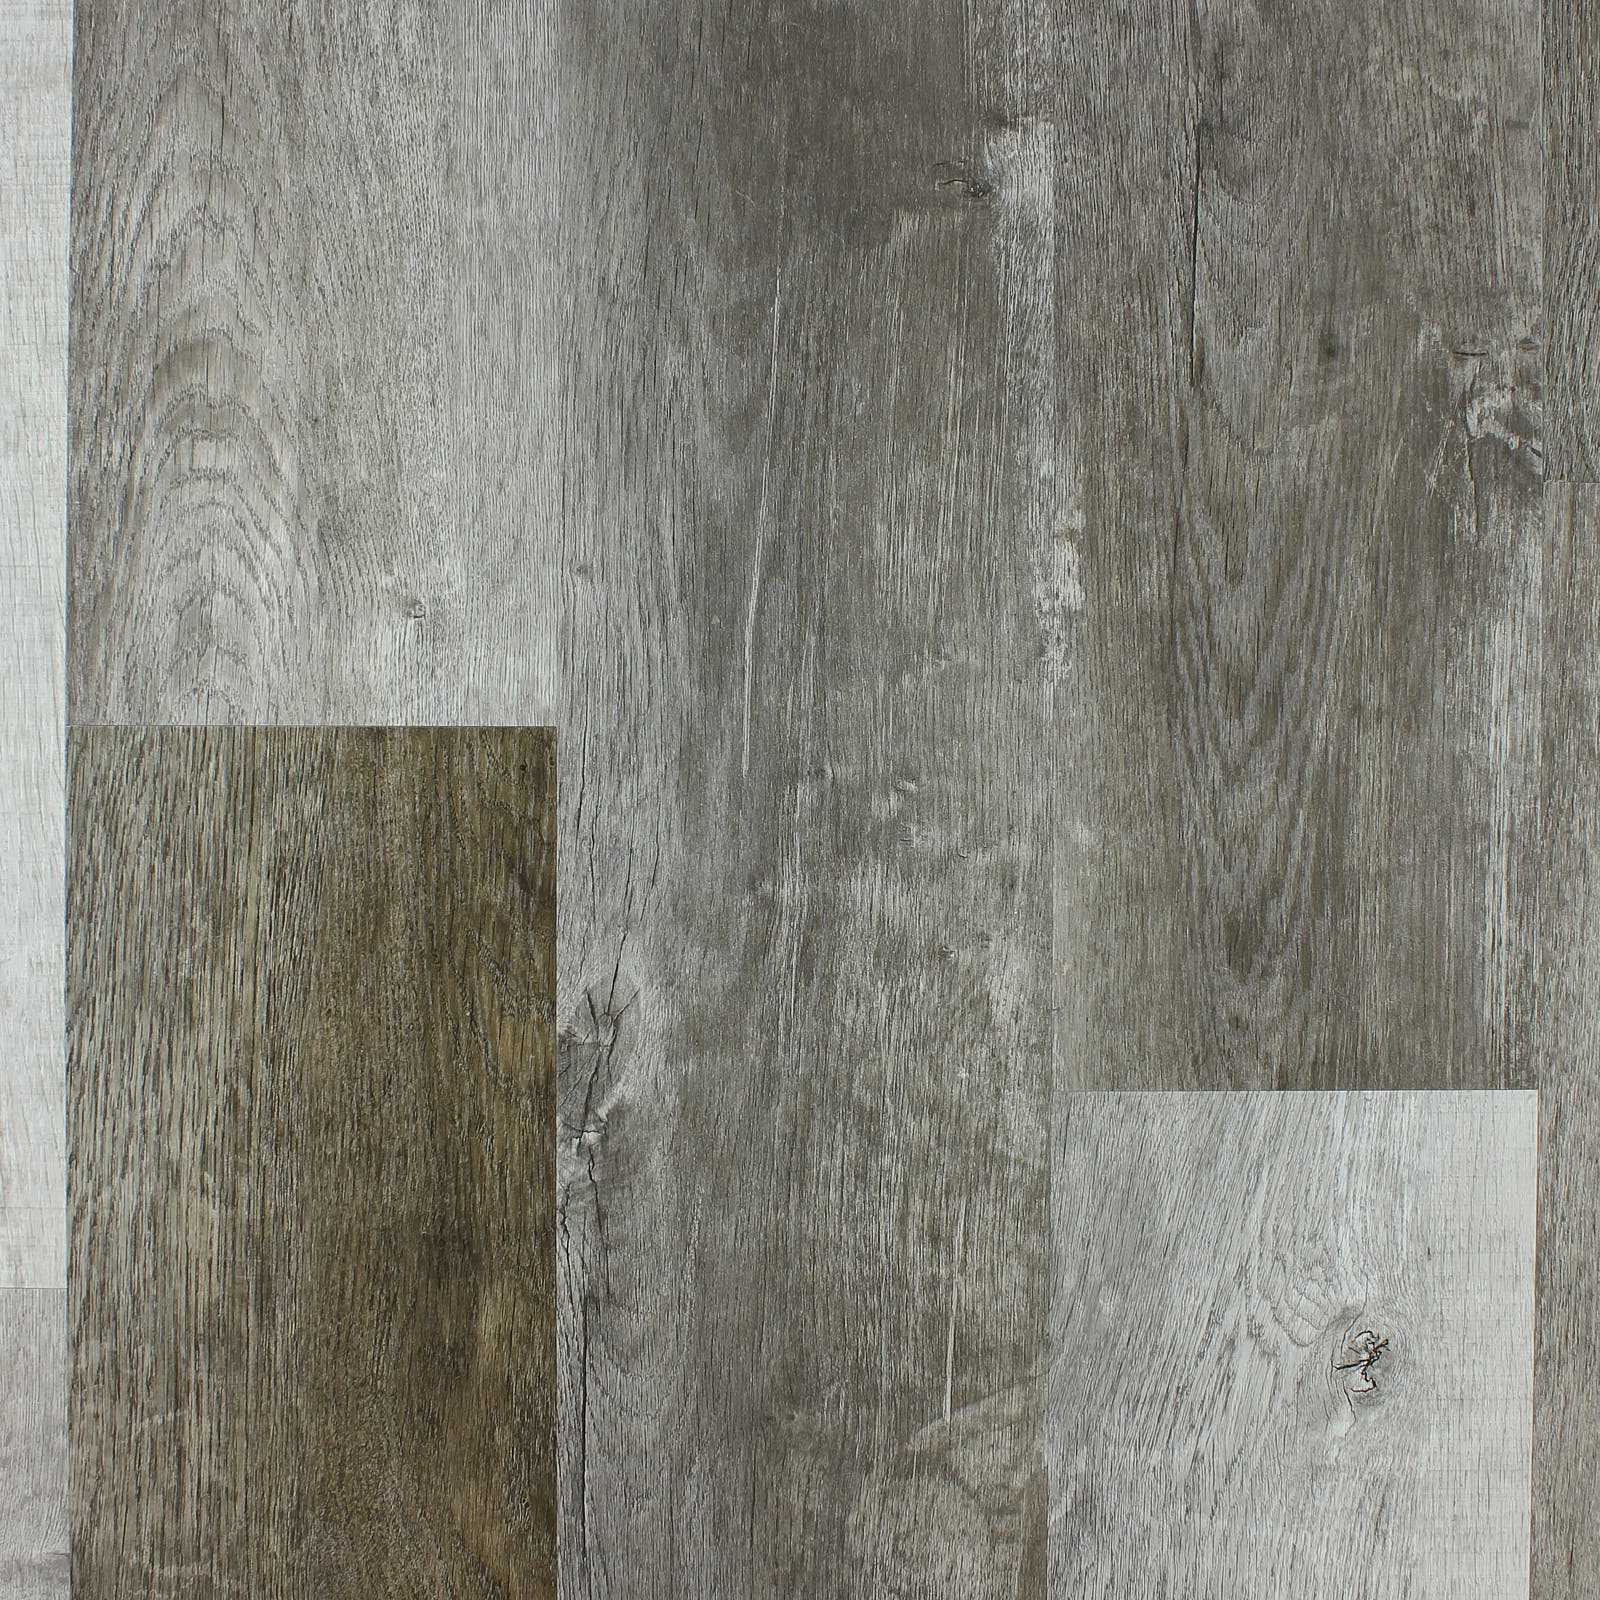 Florentine Plus Fidelity Oak Rigid Core Vinyl Plank Flooring